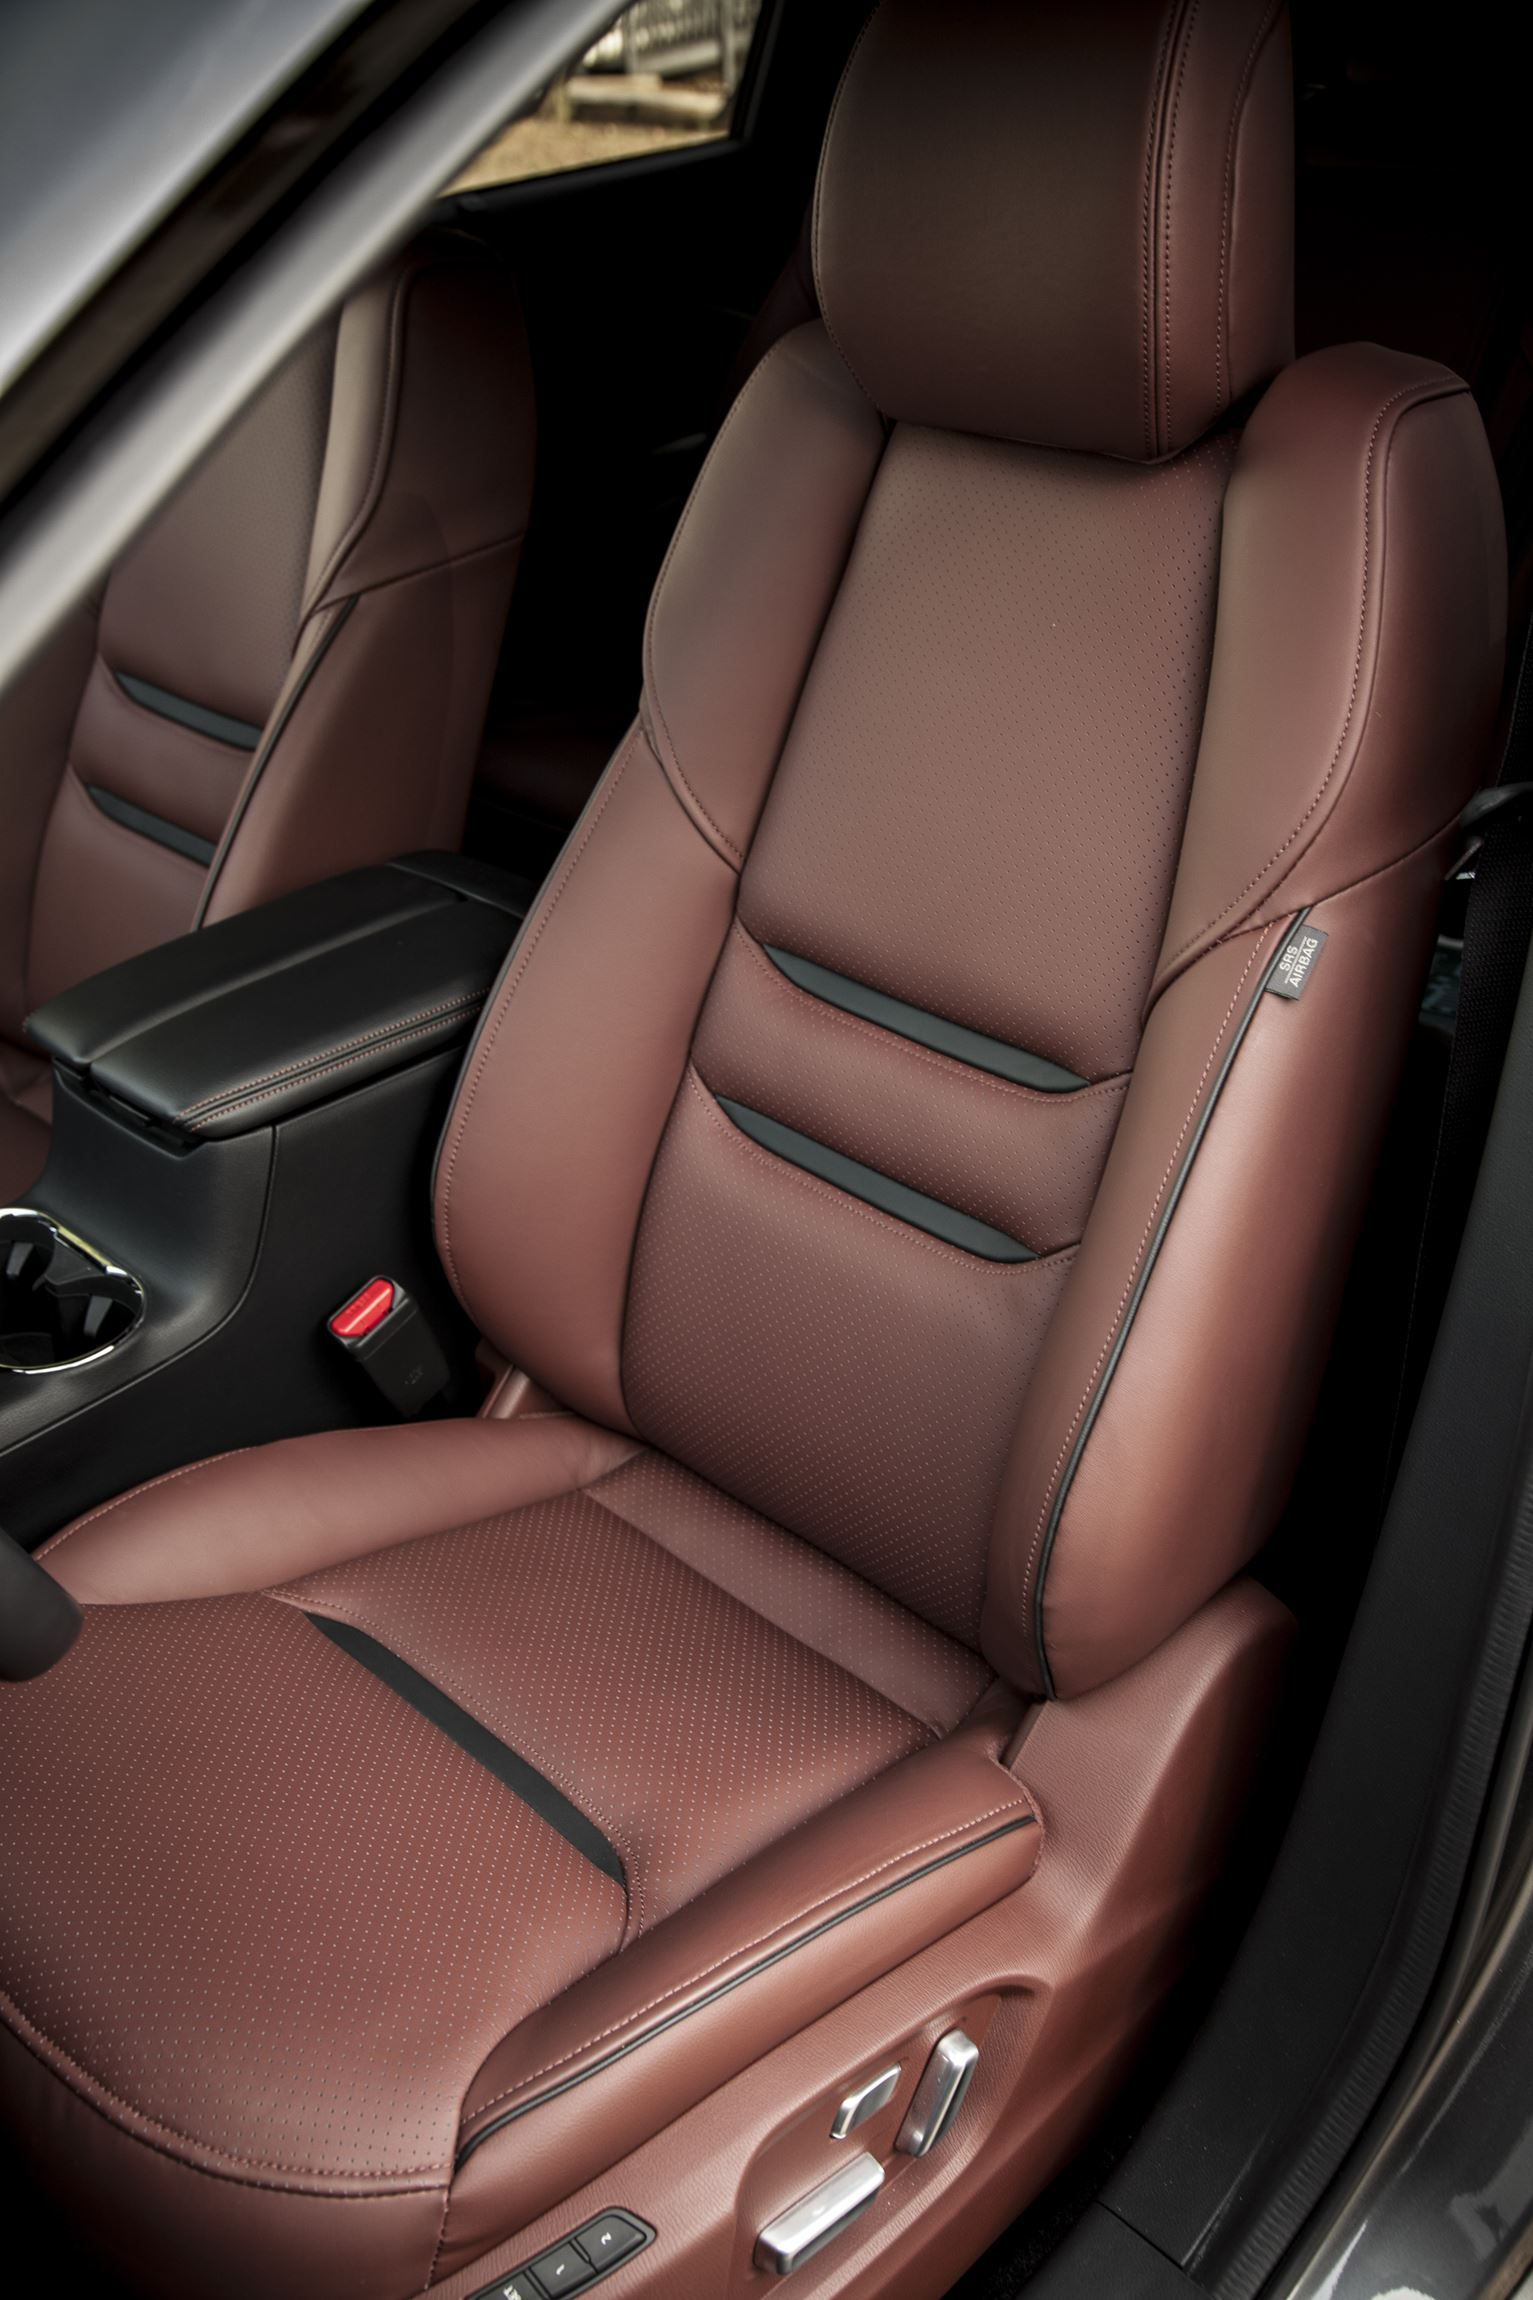 Miraculous 2017 Mazda Cx 9 Revealed Gorgeous Redesign Lux Cabin And Creativecarmelina Interior Chair Design Creativecarmelinacom